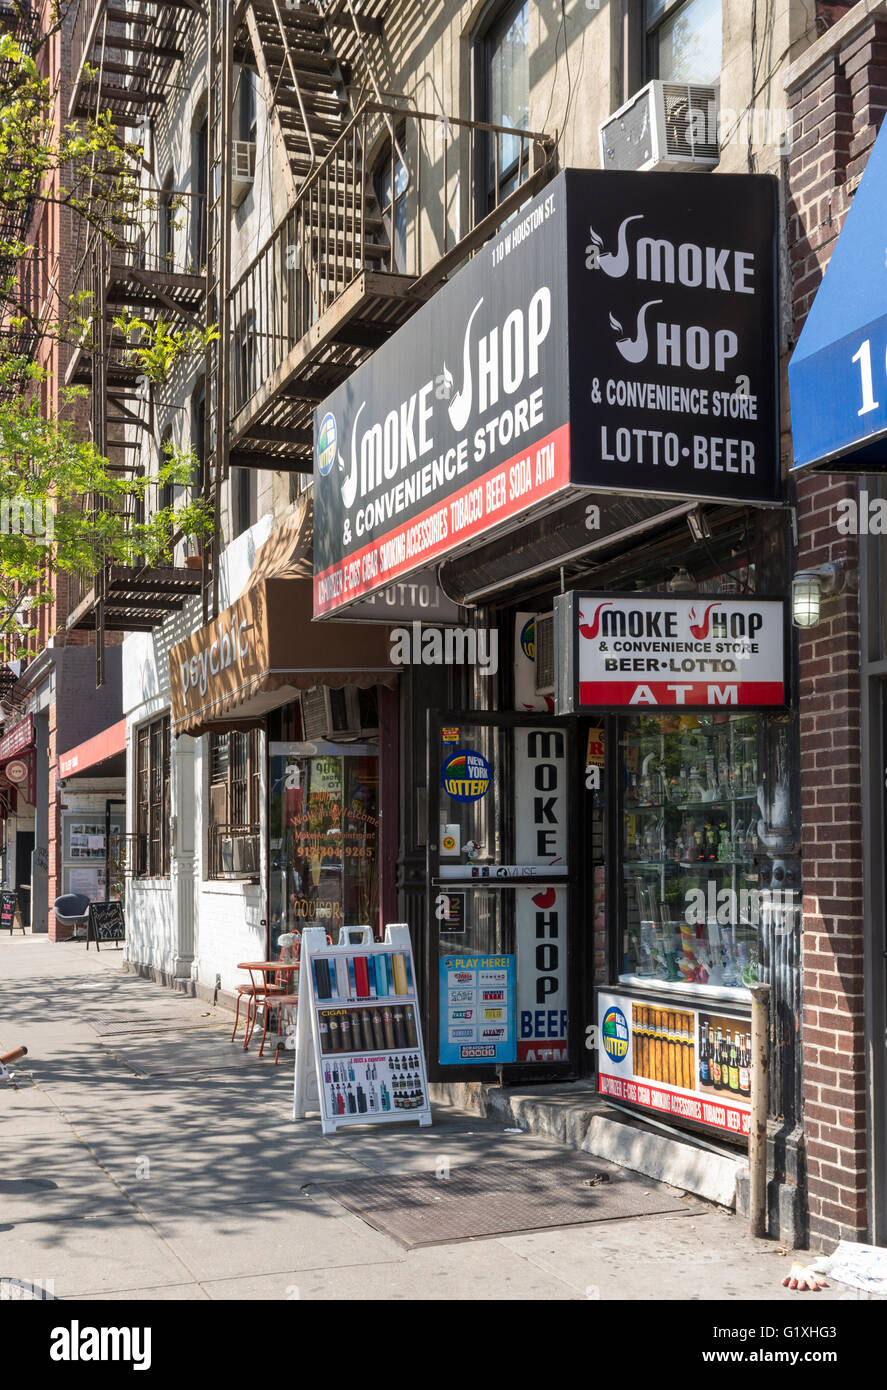 Exterior street view of a typical American / New York Smoke Shop selling tobacco products, e-cig supplies and bongs. - Stock Image